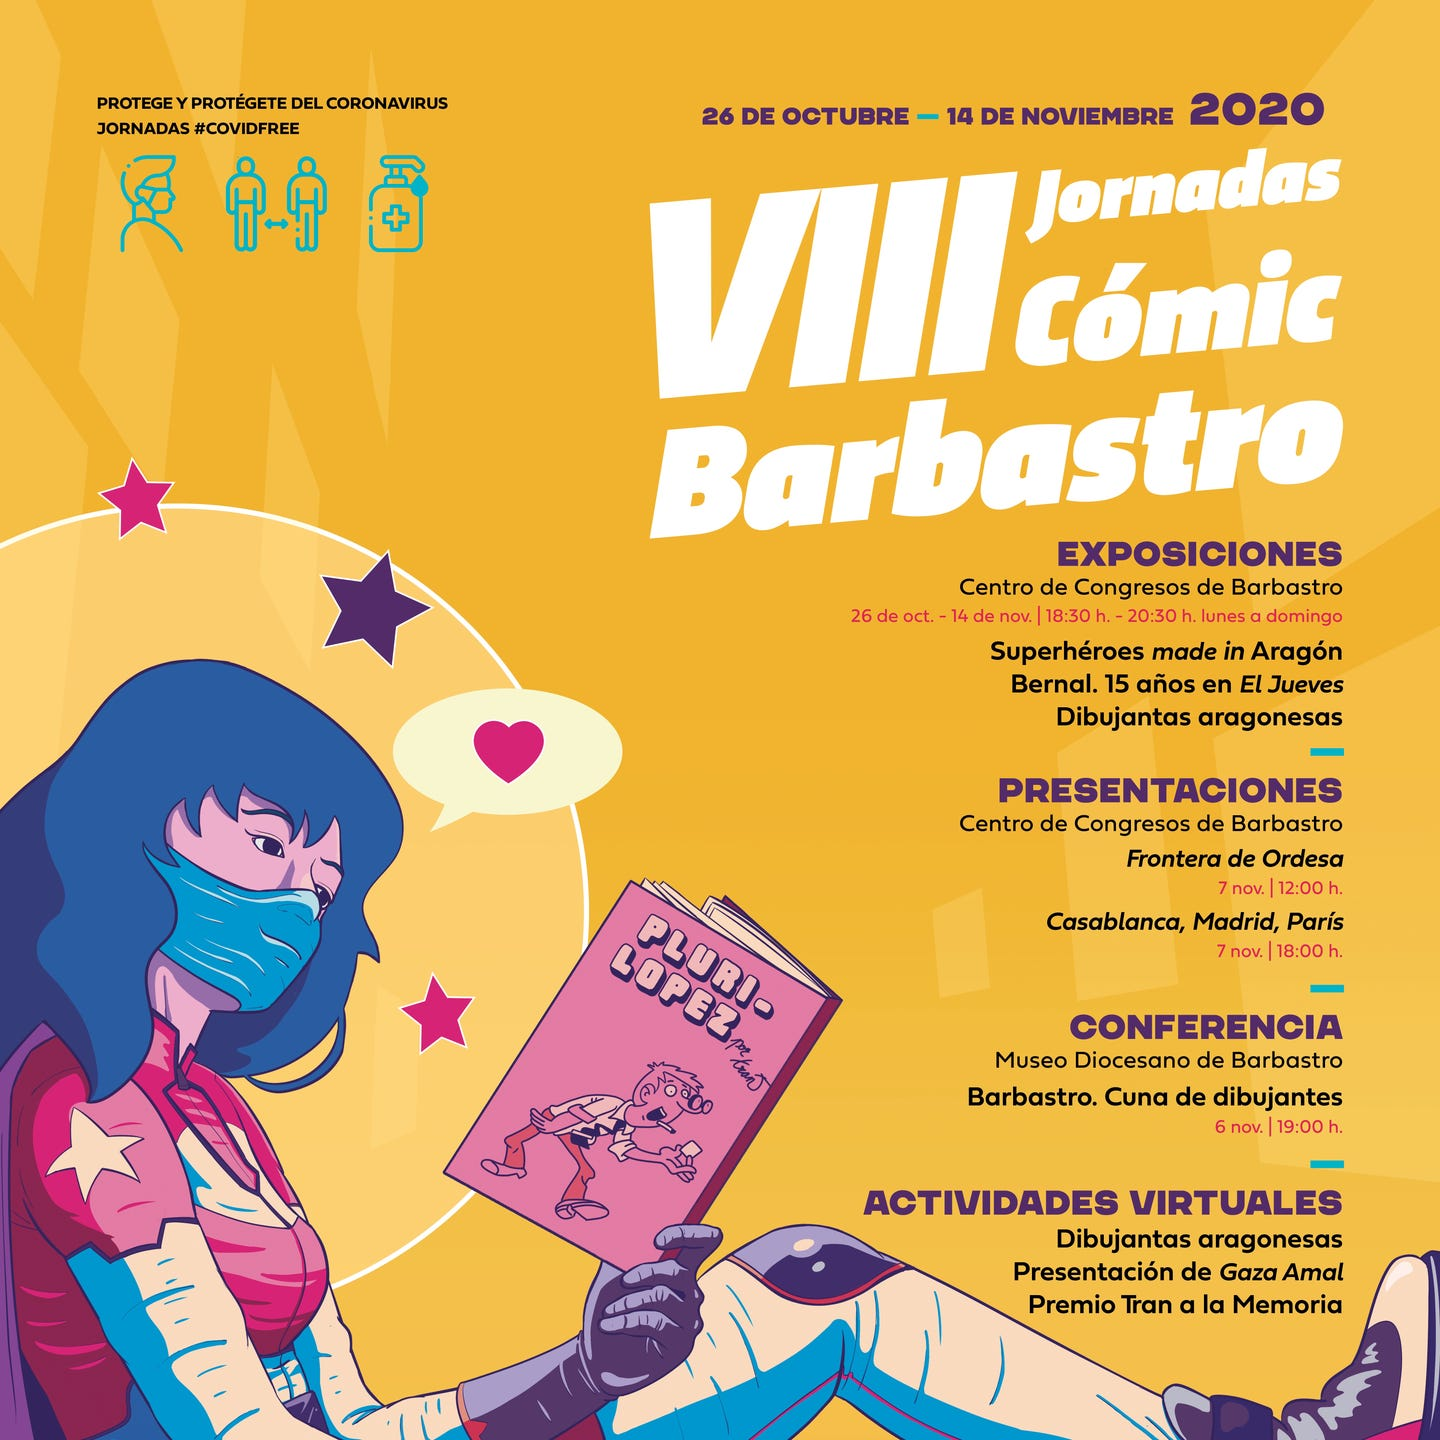 VIII JORNADA COMIC BARBASTRO CARTEL